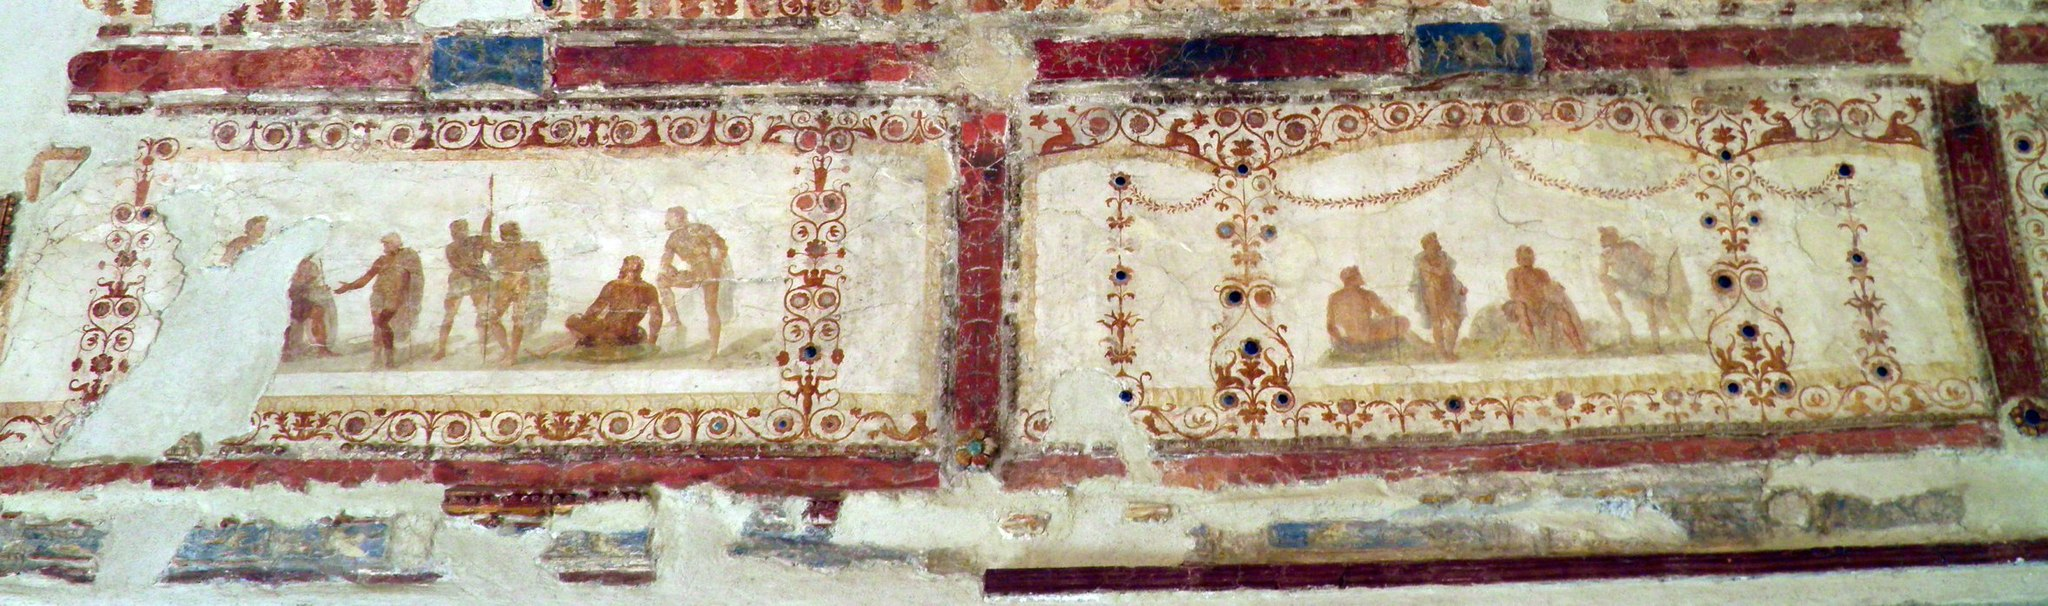 """""""Nerone"""" exhibition, Palatine Museum the luxury of the imperial palace, the painted decoration of the Domus Transitoria, Rome (6668778737)"""